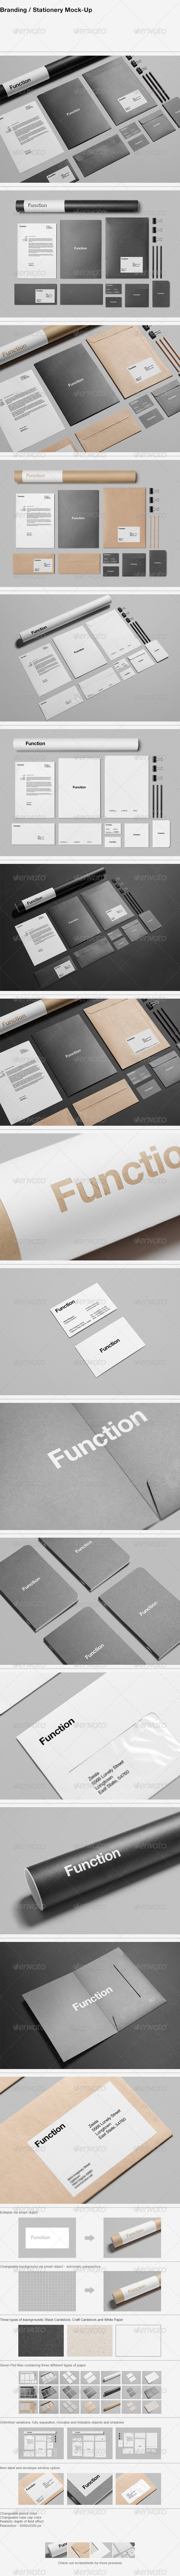 GraphicRiver Branding Stationery Mock-Up 5598480